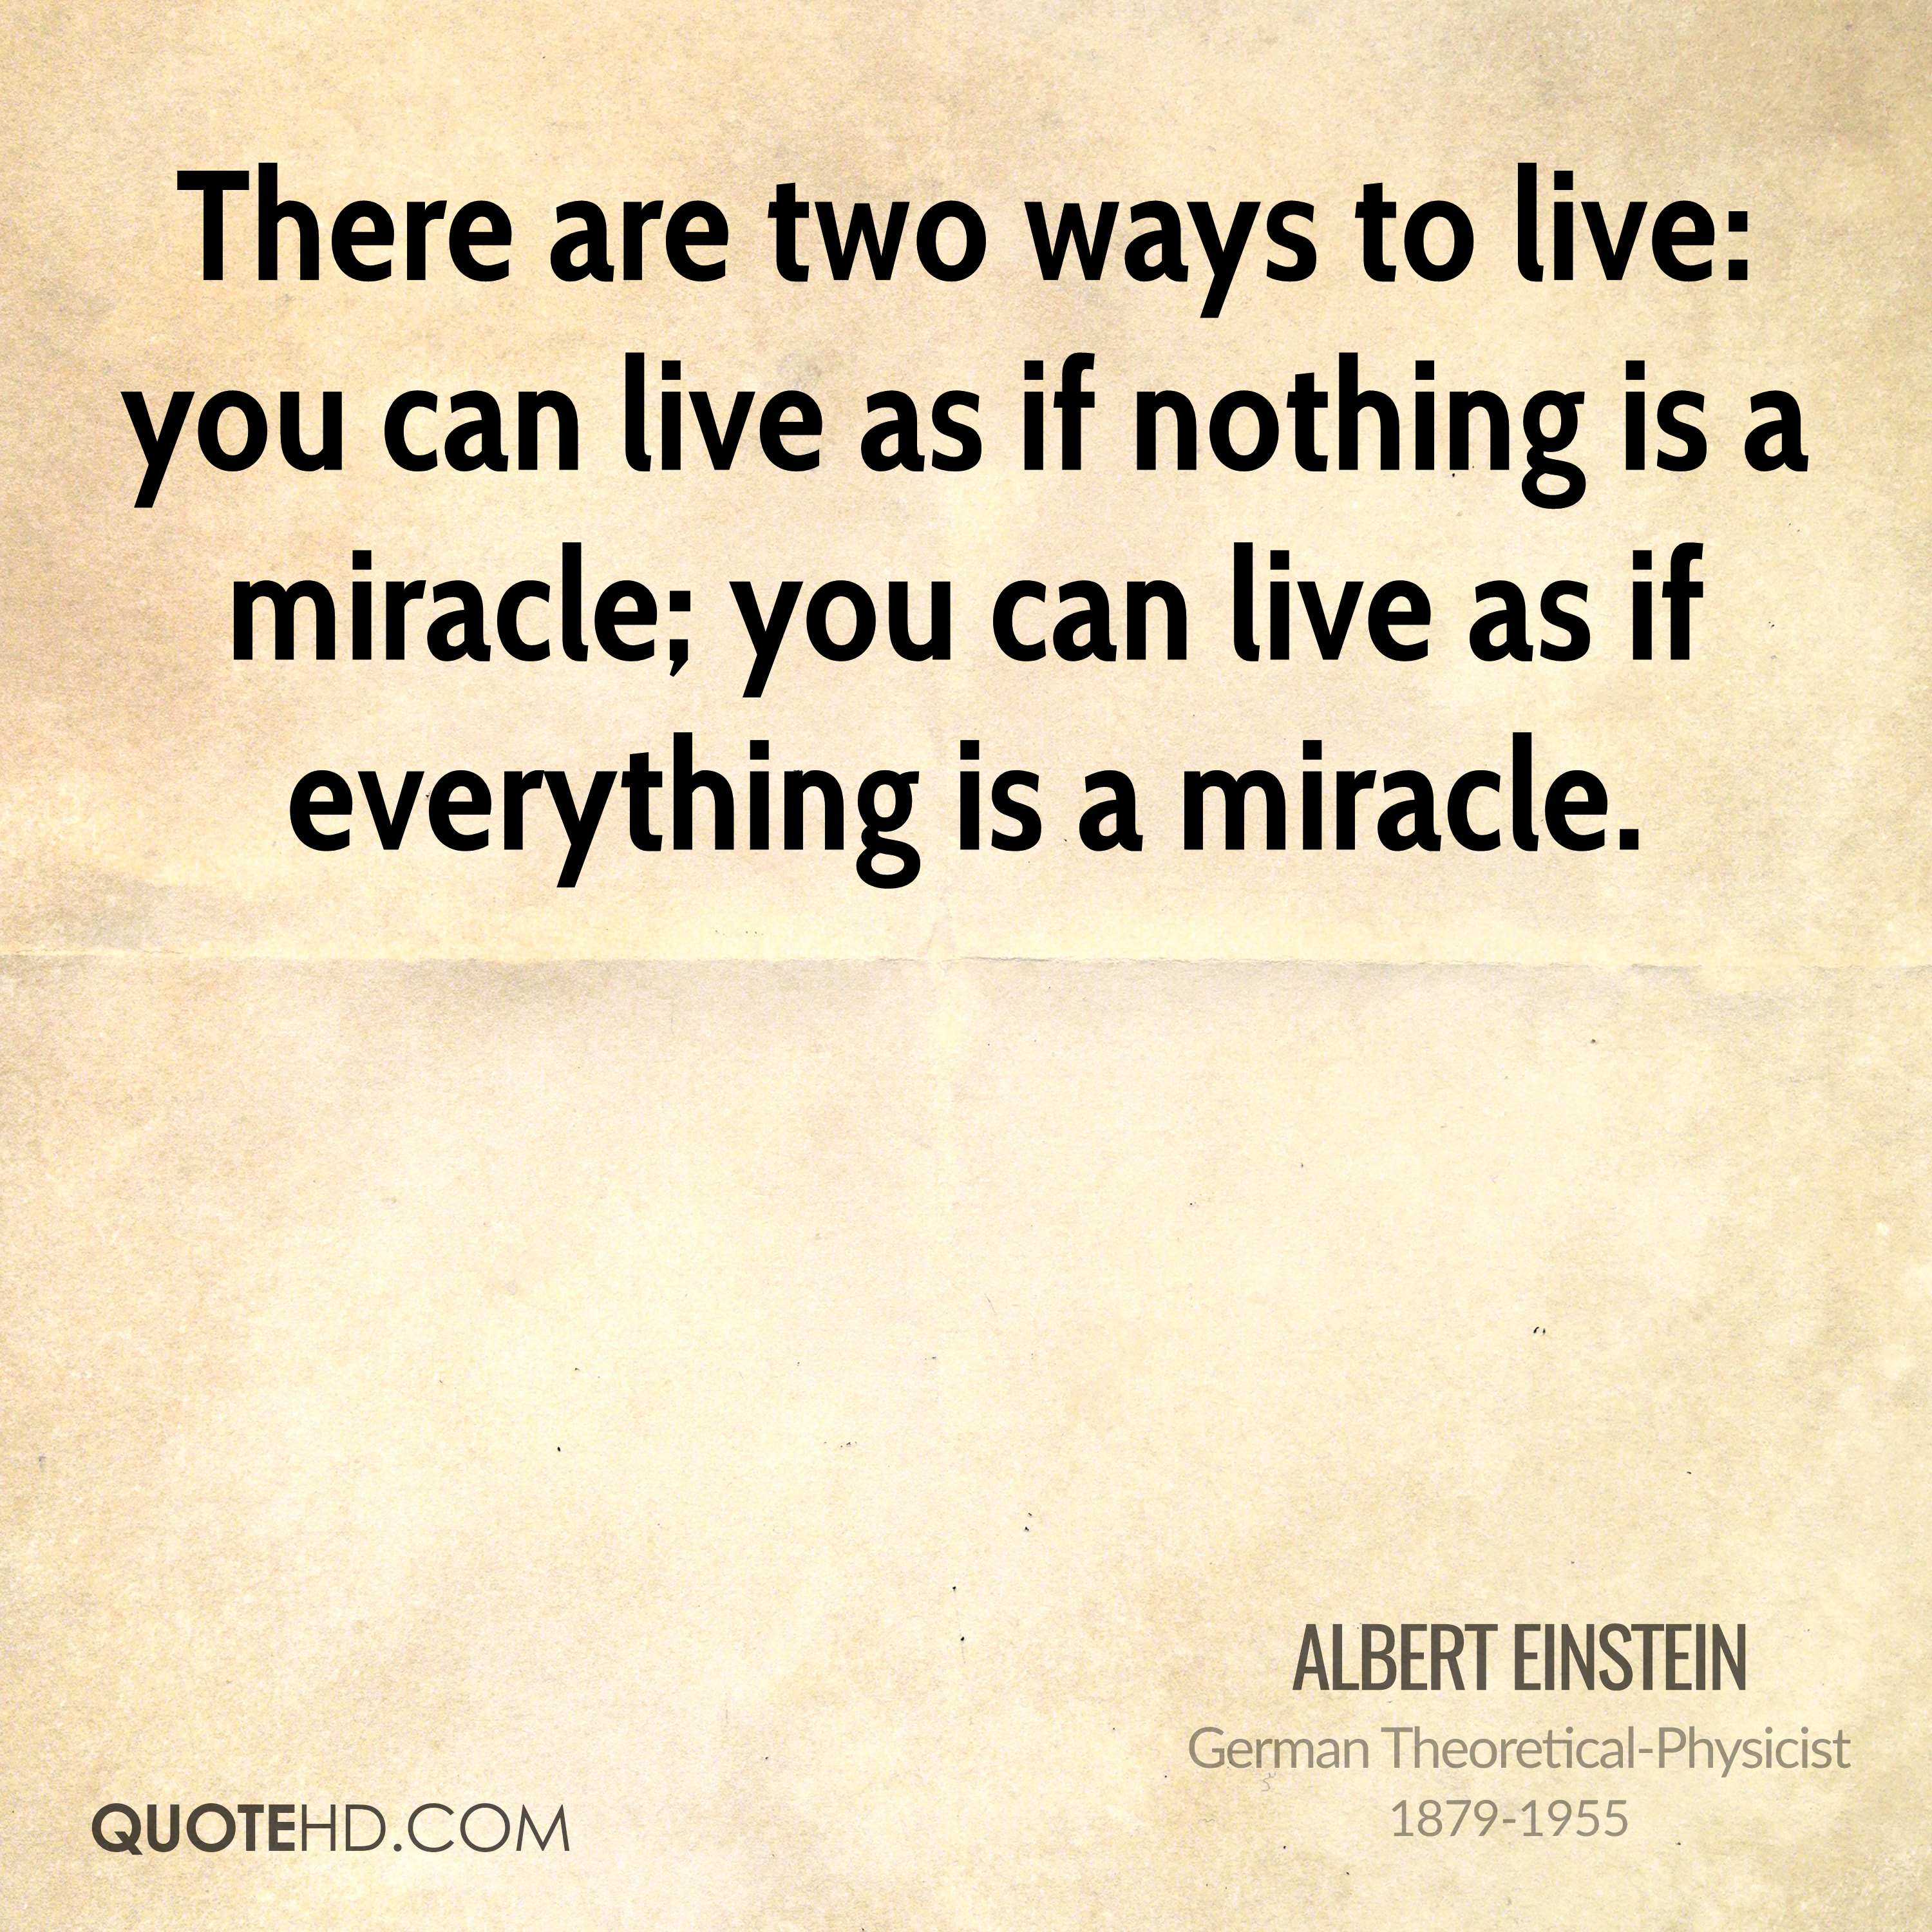 There are two ways to live: you can live as if nothing is a miracle; you can live as if everything is a miracle.